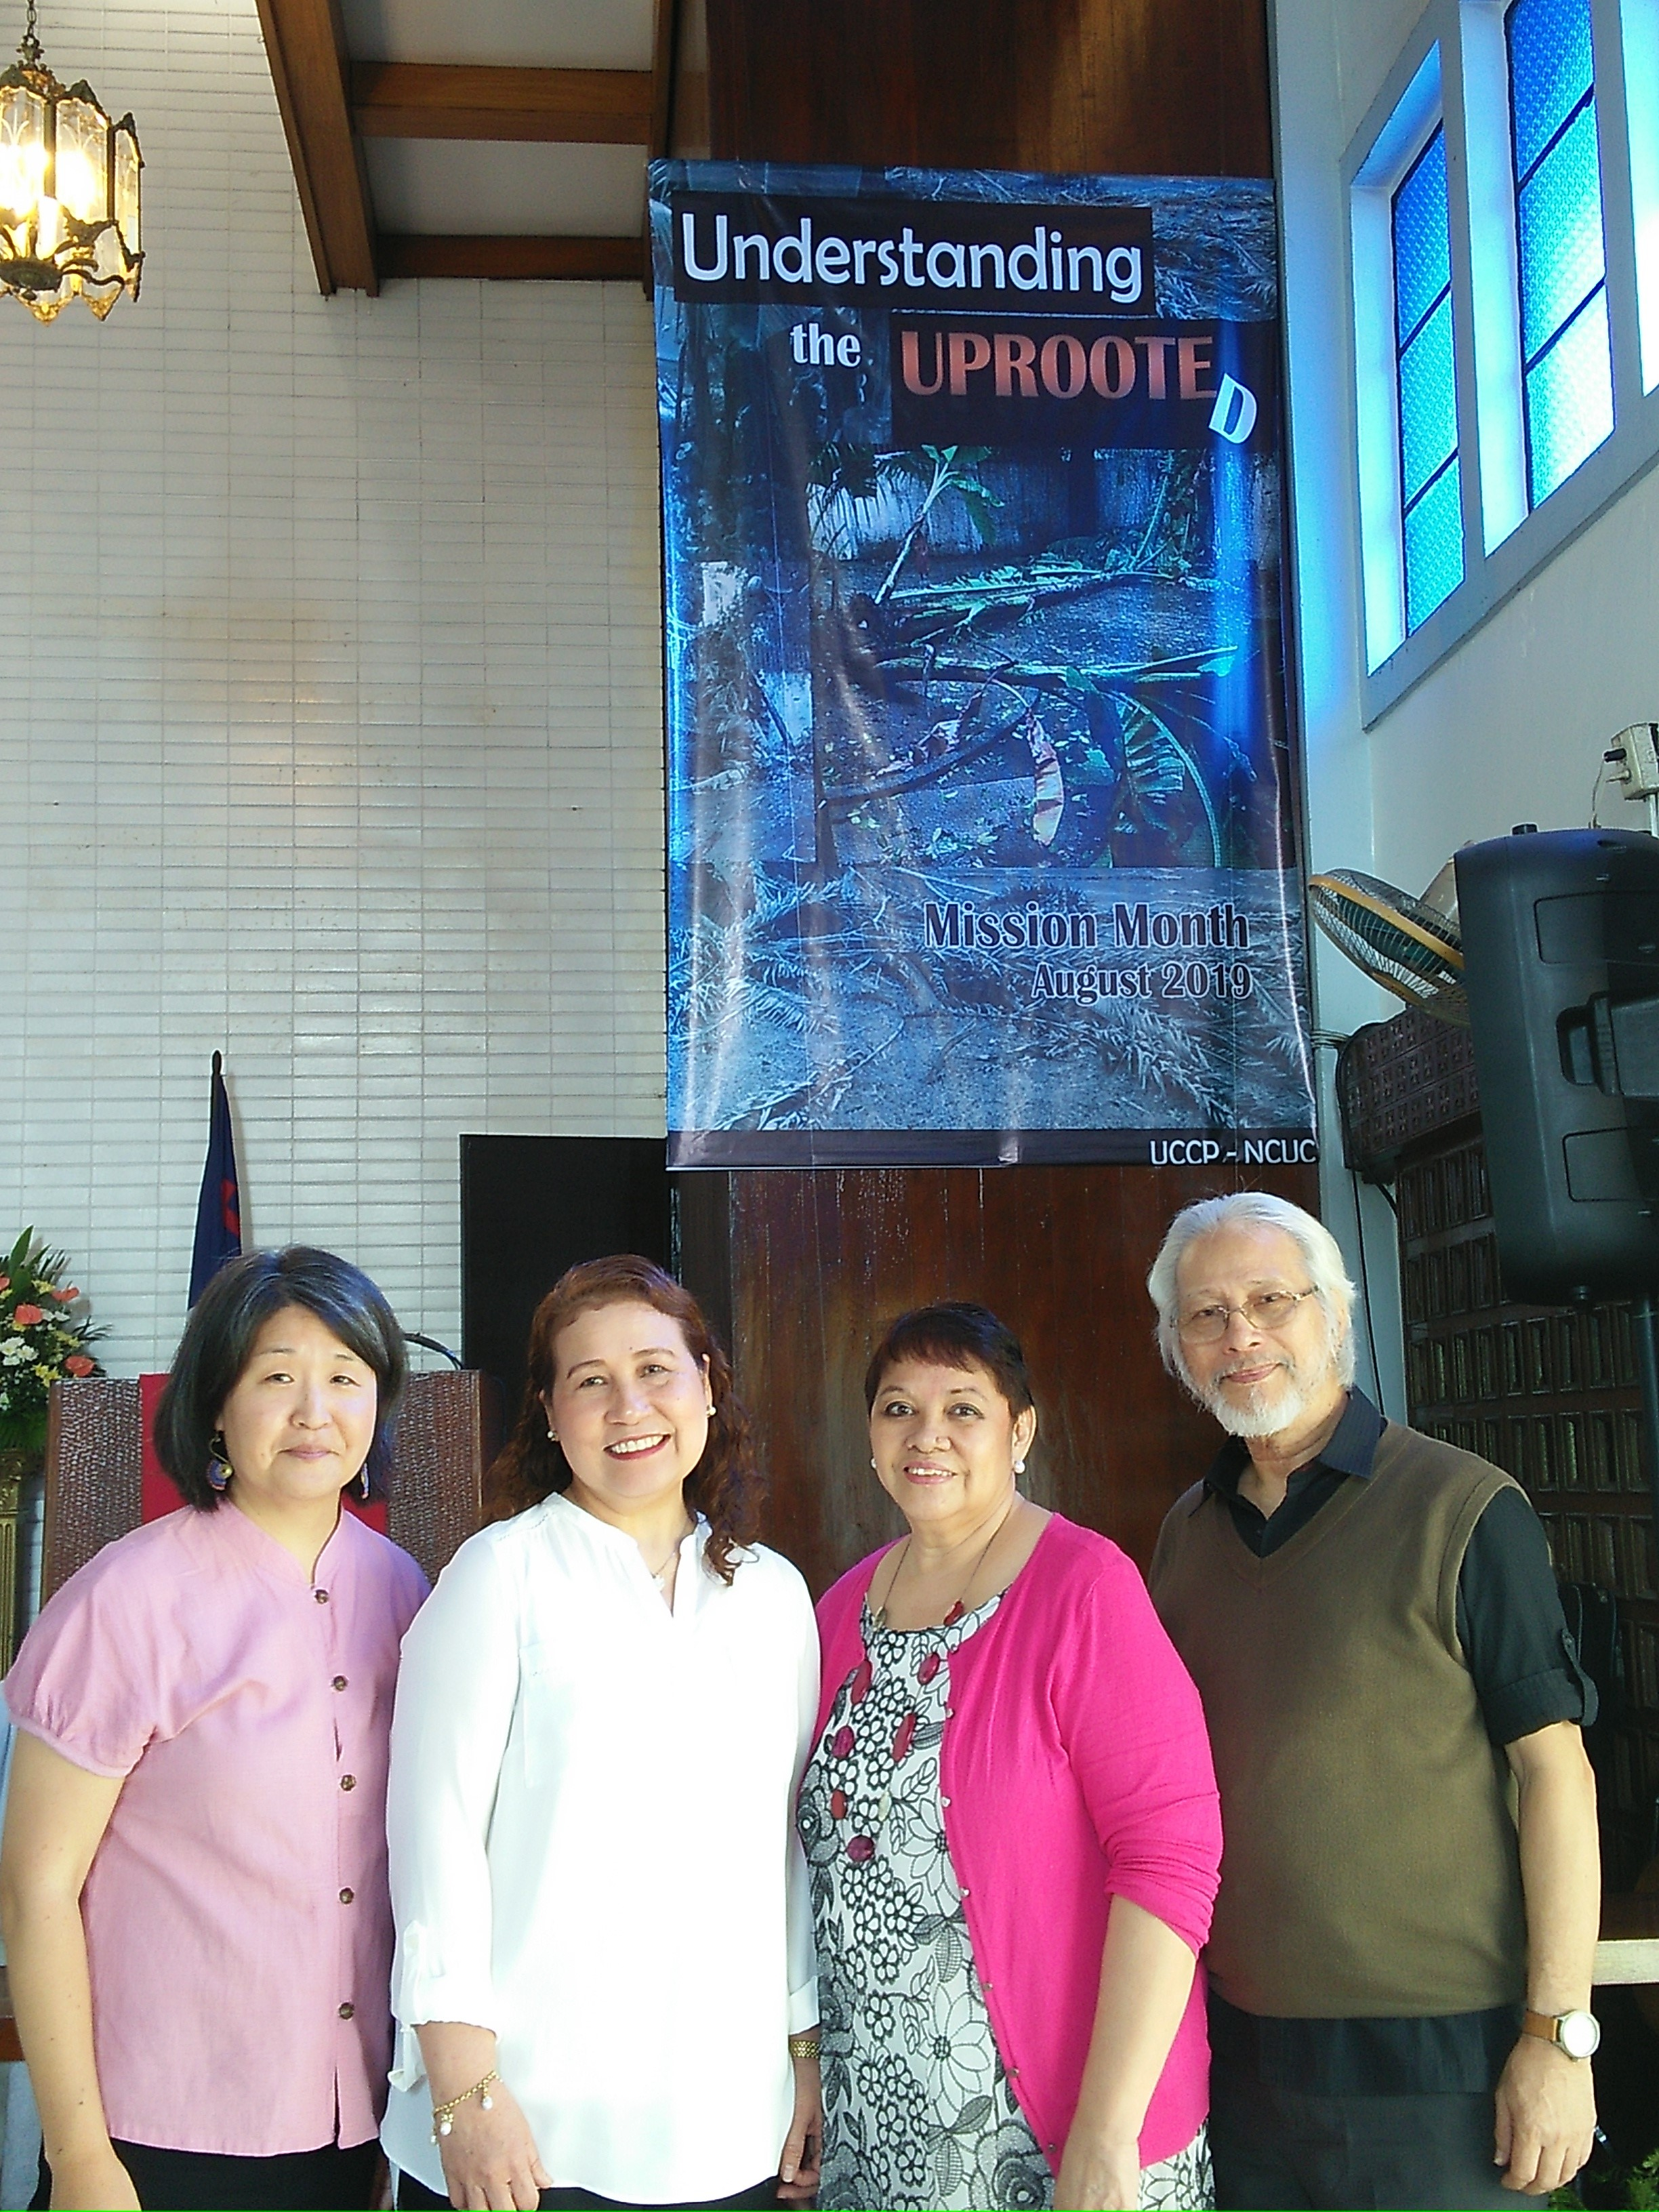 Kickoff to Mission Month with church leaders Loree, James, and Grace.